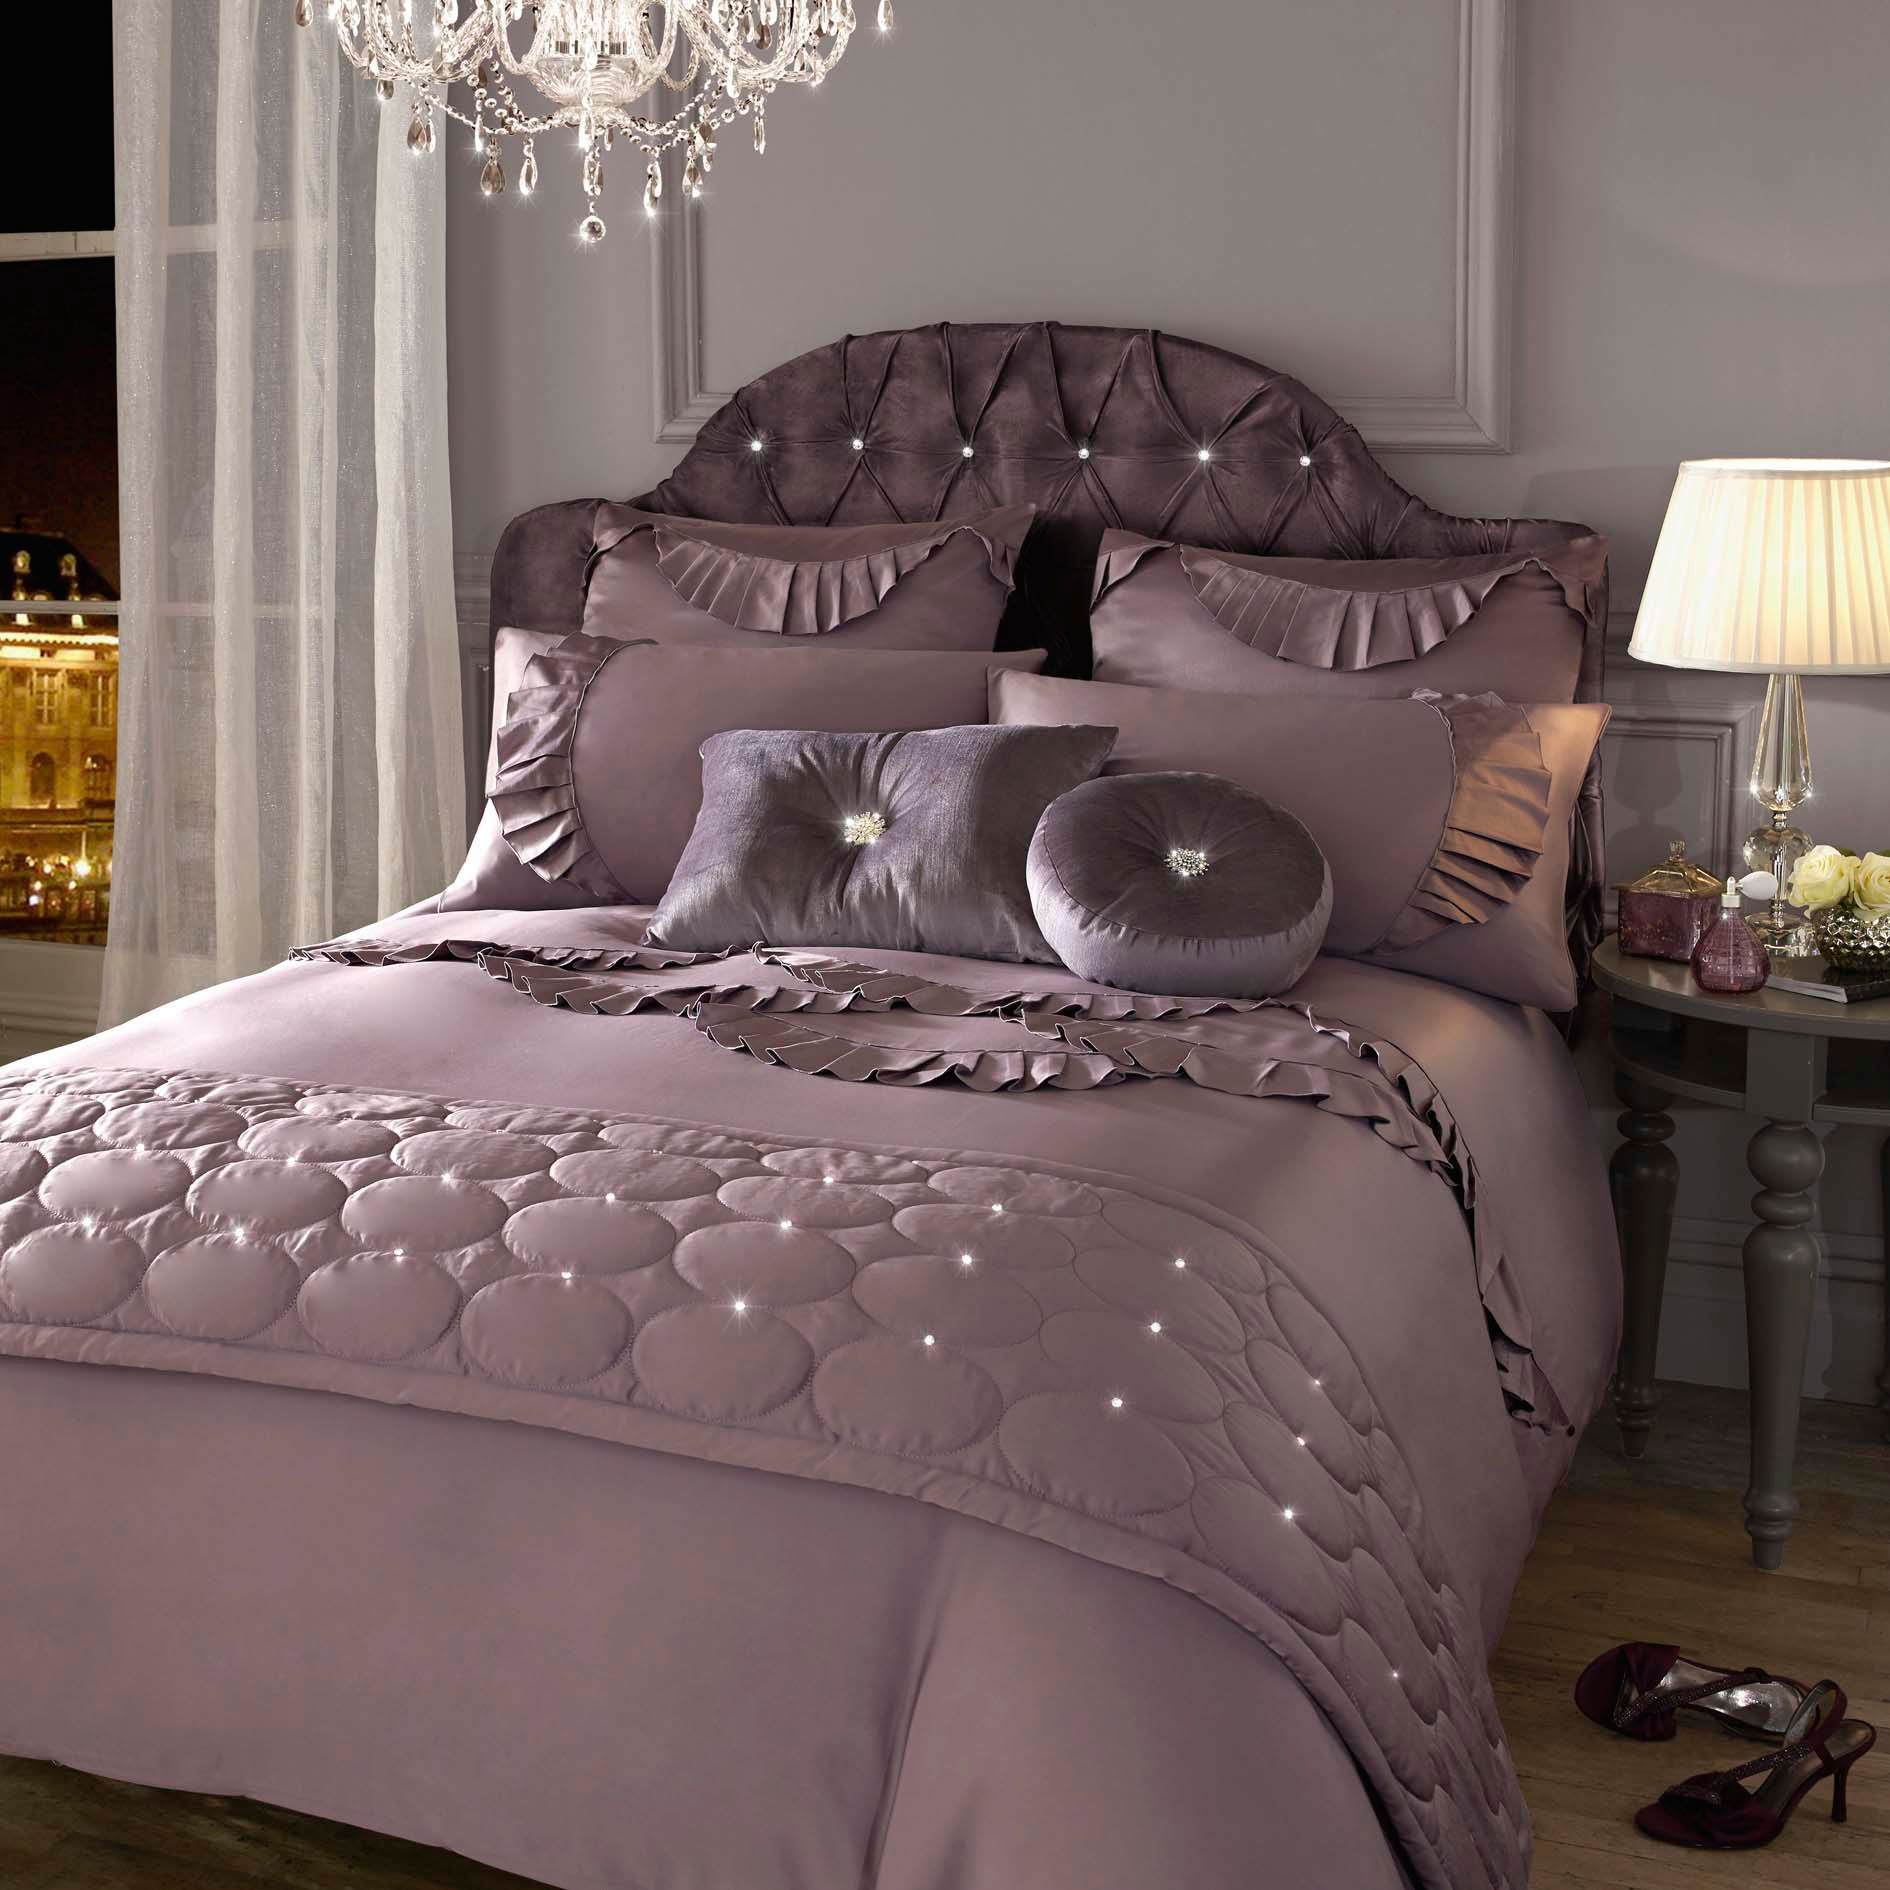 Evangeline amethyst super king duvet cover